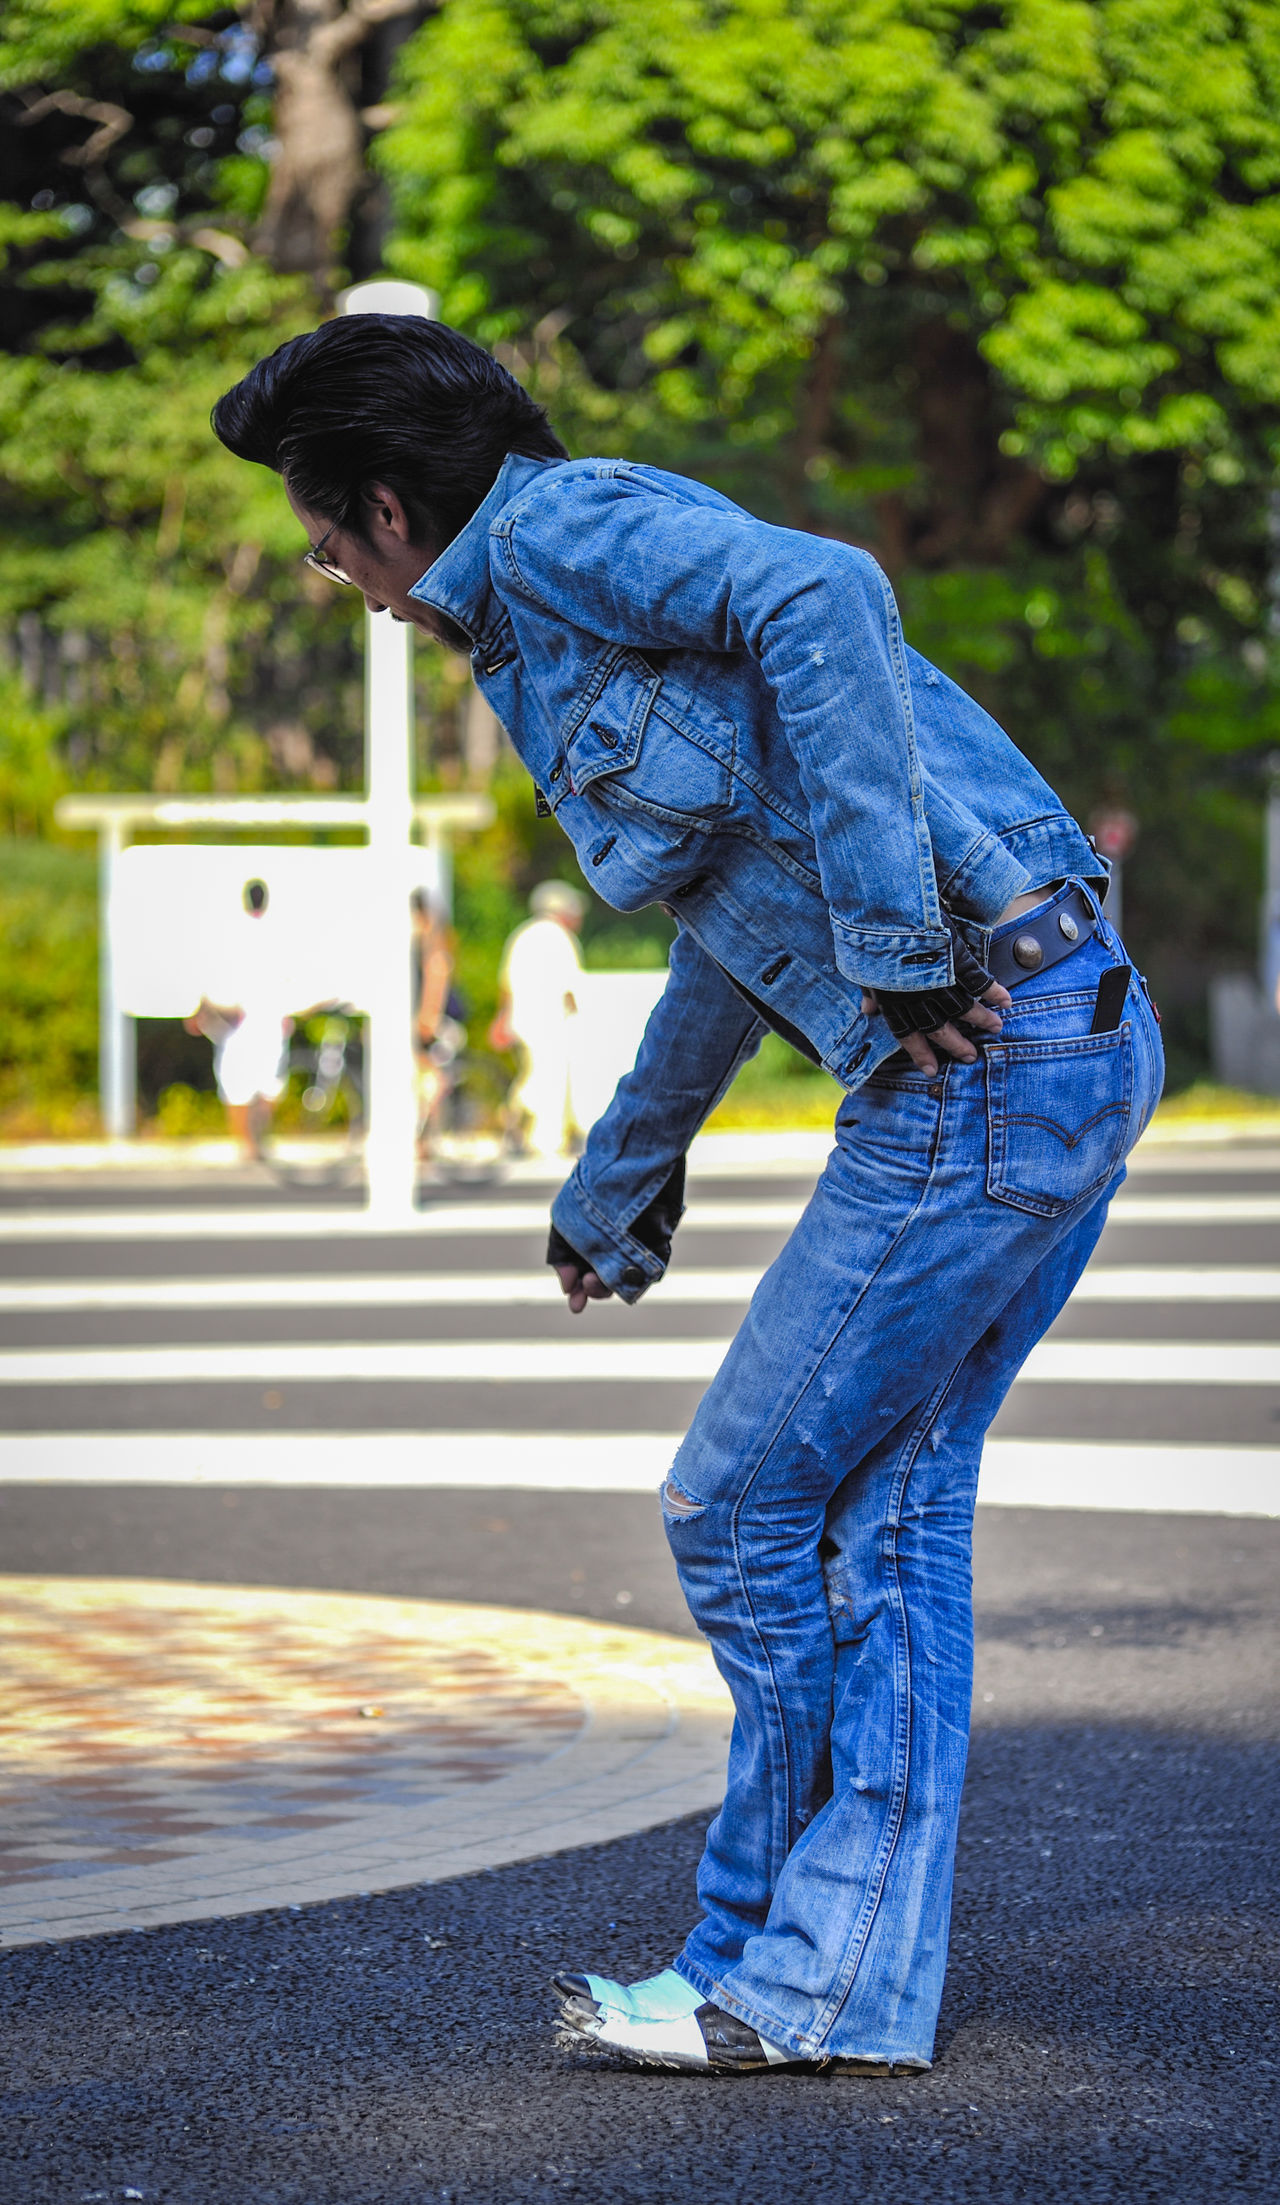 A 50's style rocker in Yoyogi Park, Tokyo. 50's Style Built Structure Casual Clothing Dancer Day Denim Full Length Japan Jeans Leisure Activity Lifestyles One Person Outdoors Real People Road Rock N Roll Side View Young Adult Yoyogi Park The Street Photographer - 2017 EyeEm Awards